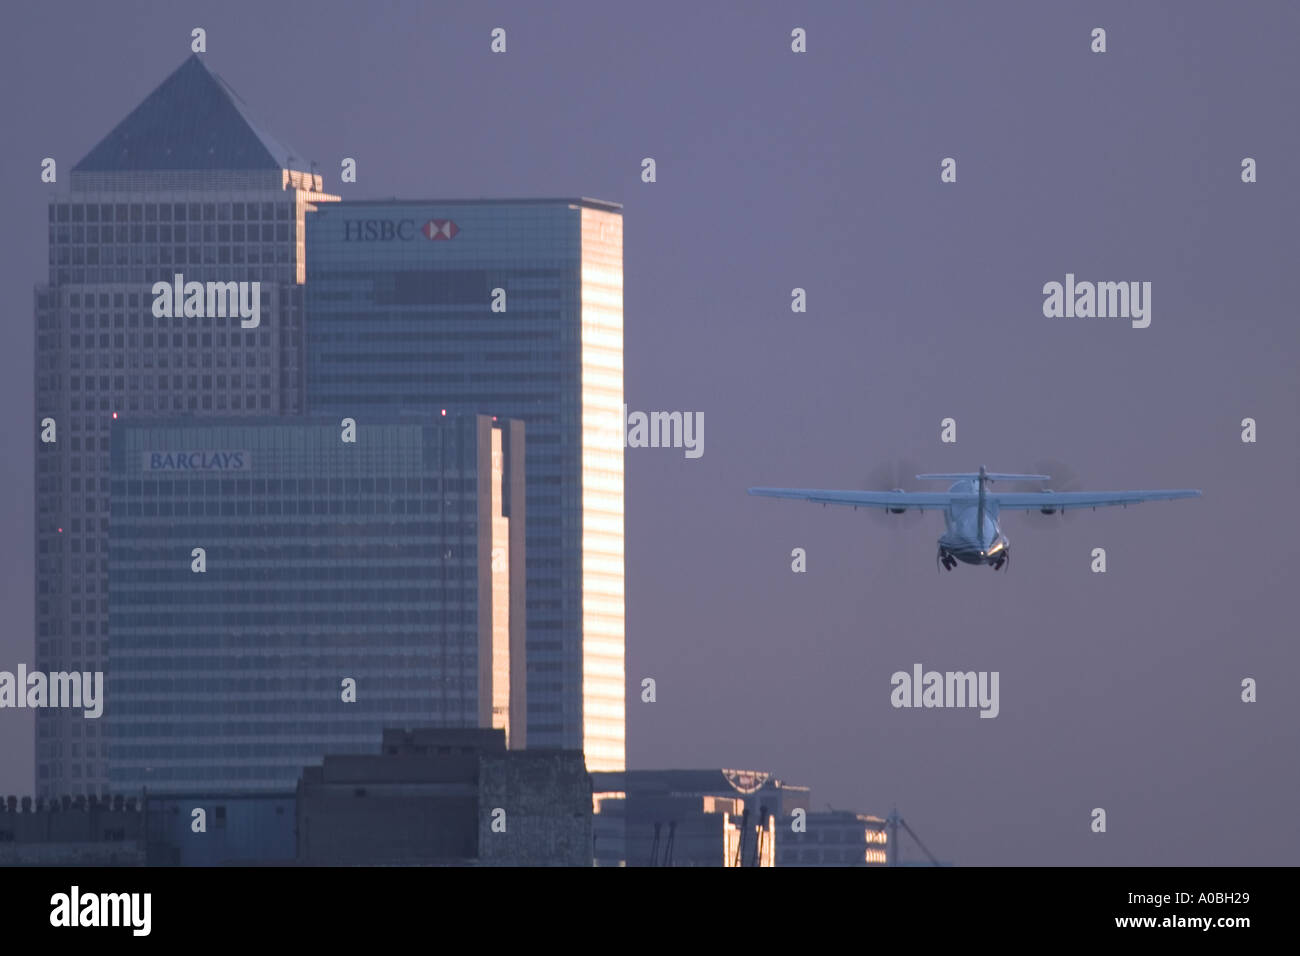 Airplane taking off at London City Airport with Canary Wharf in the background - Stock Image